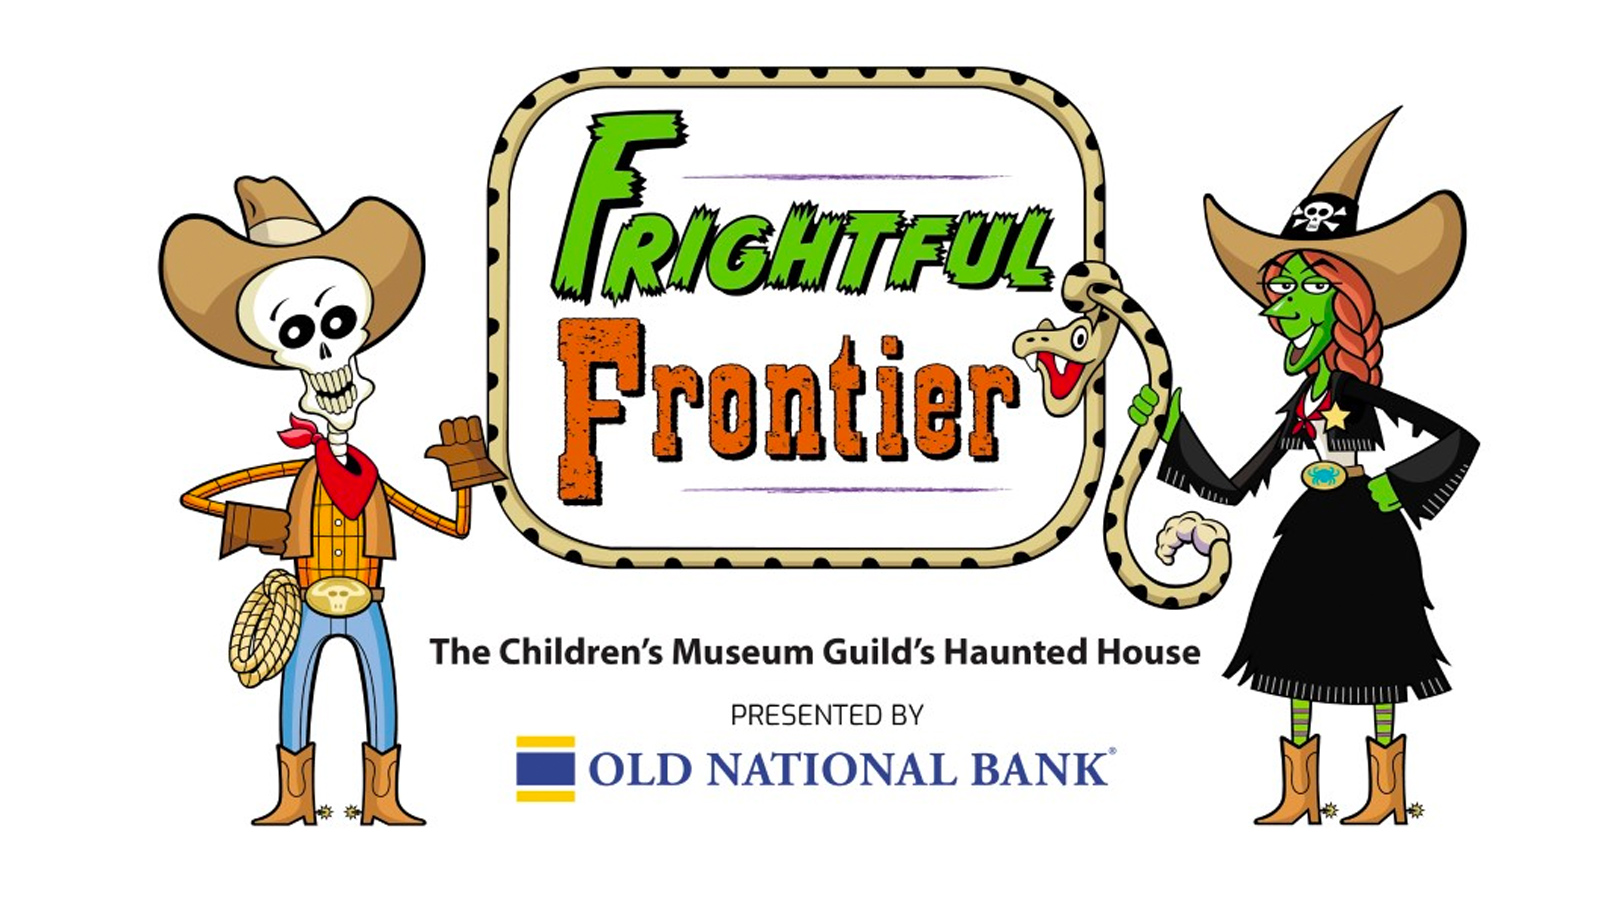 October 9th-31st — The Children's Museum Guild's Haunted House — Frightful Frontier